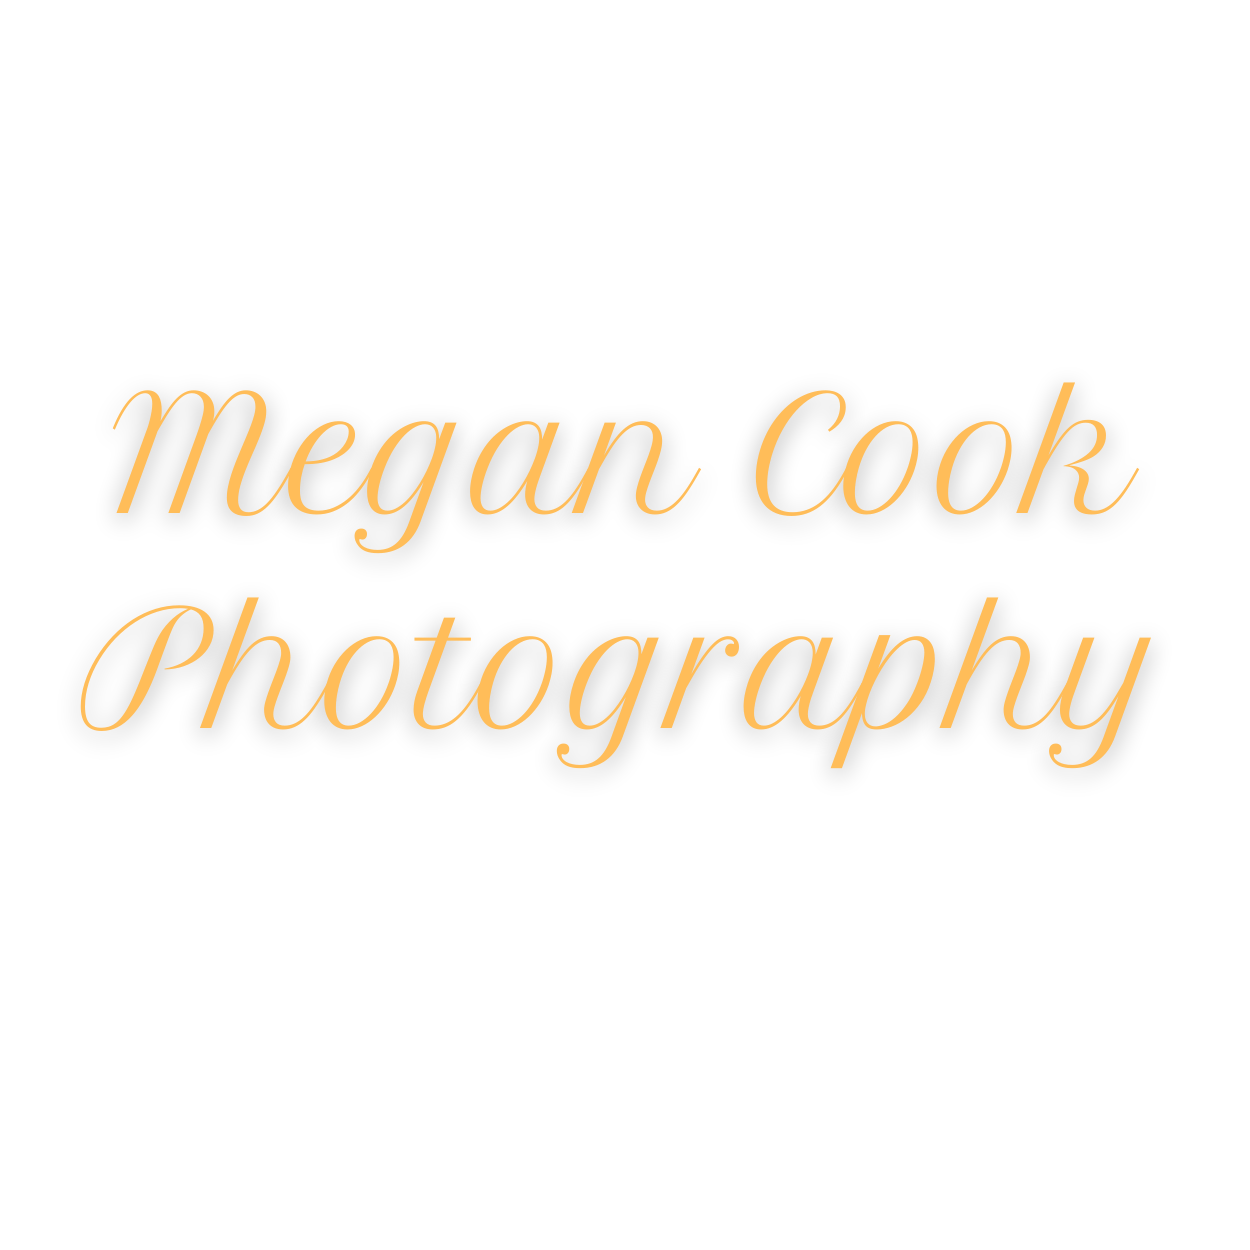 Megan Cook Photography